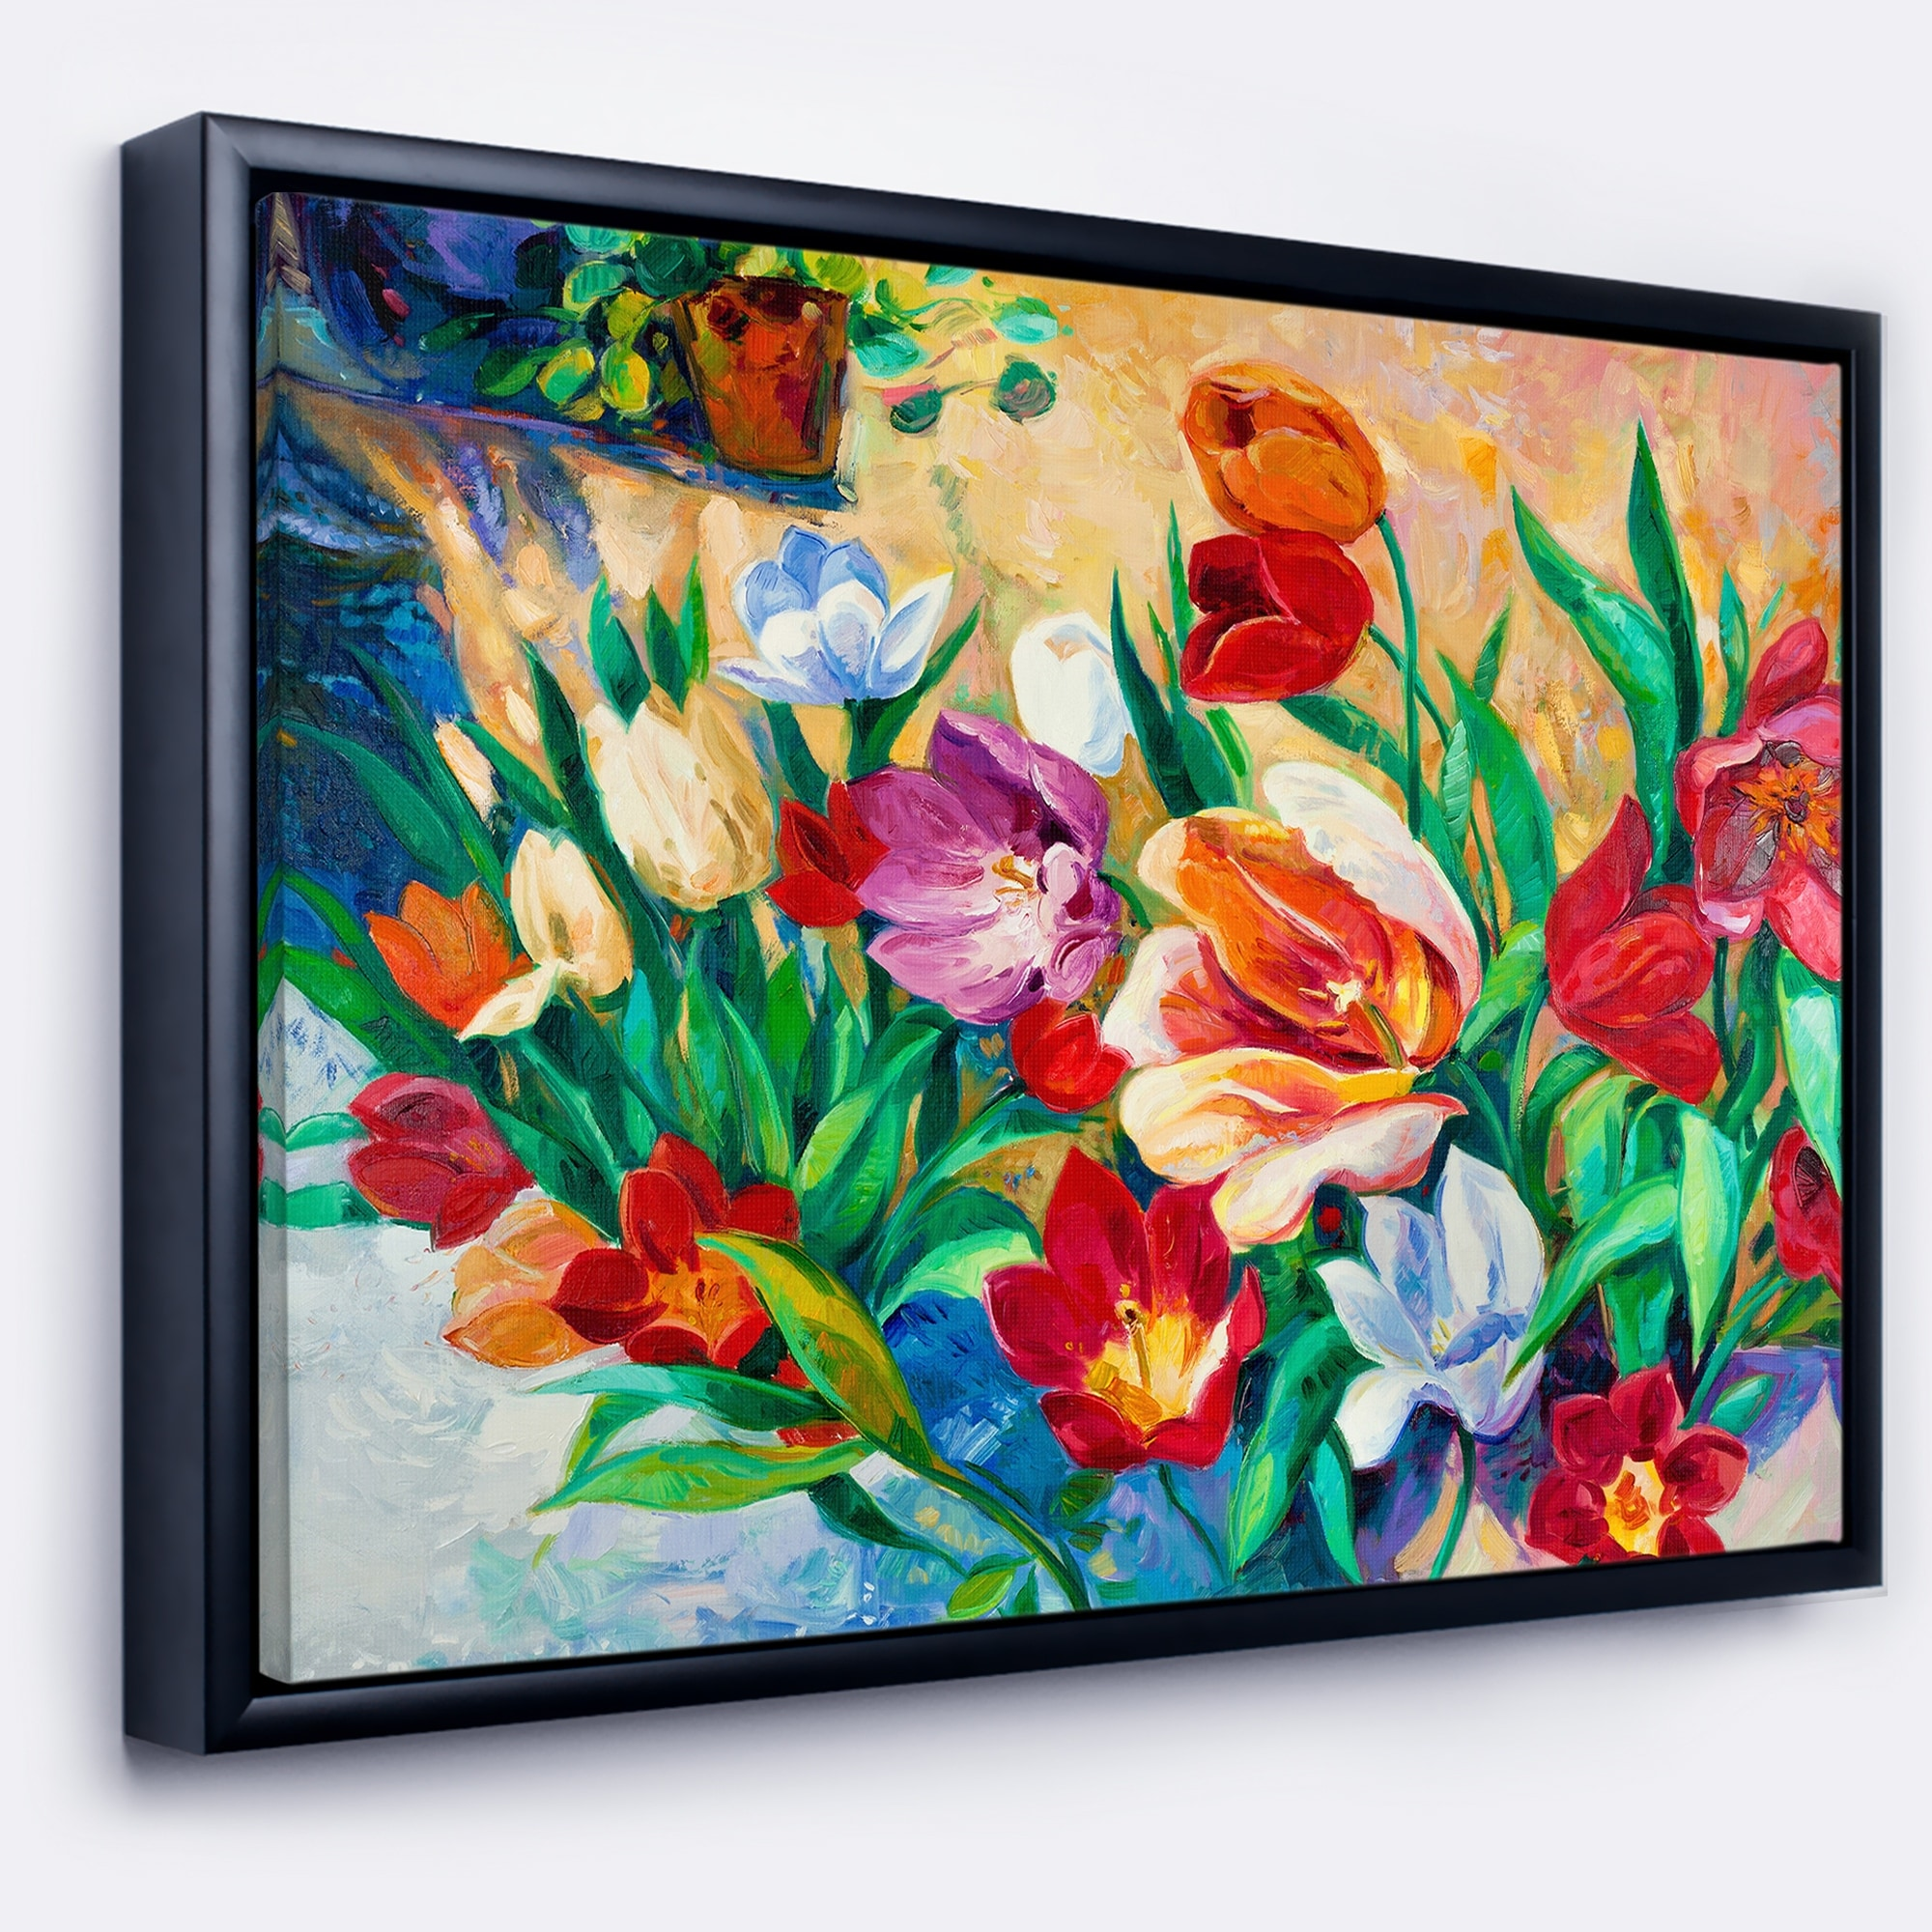 Designart Bouquet Of Colorful Flowers Large Floral Wall Art Framed Canvas Overstock 18956627